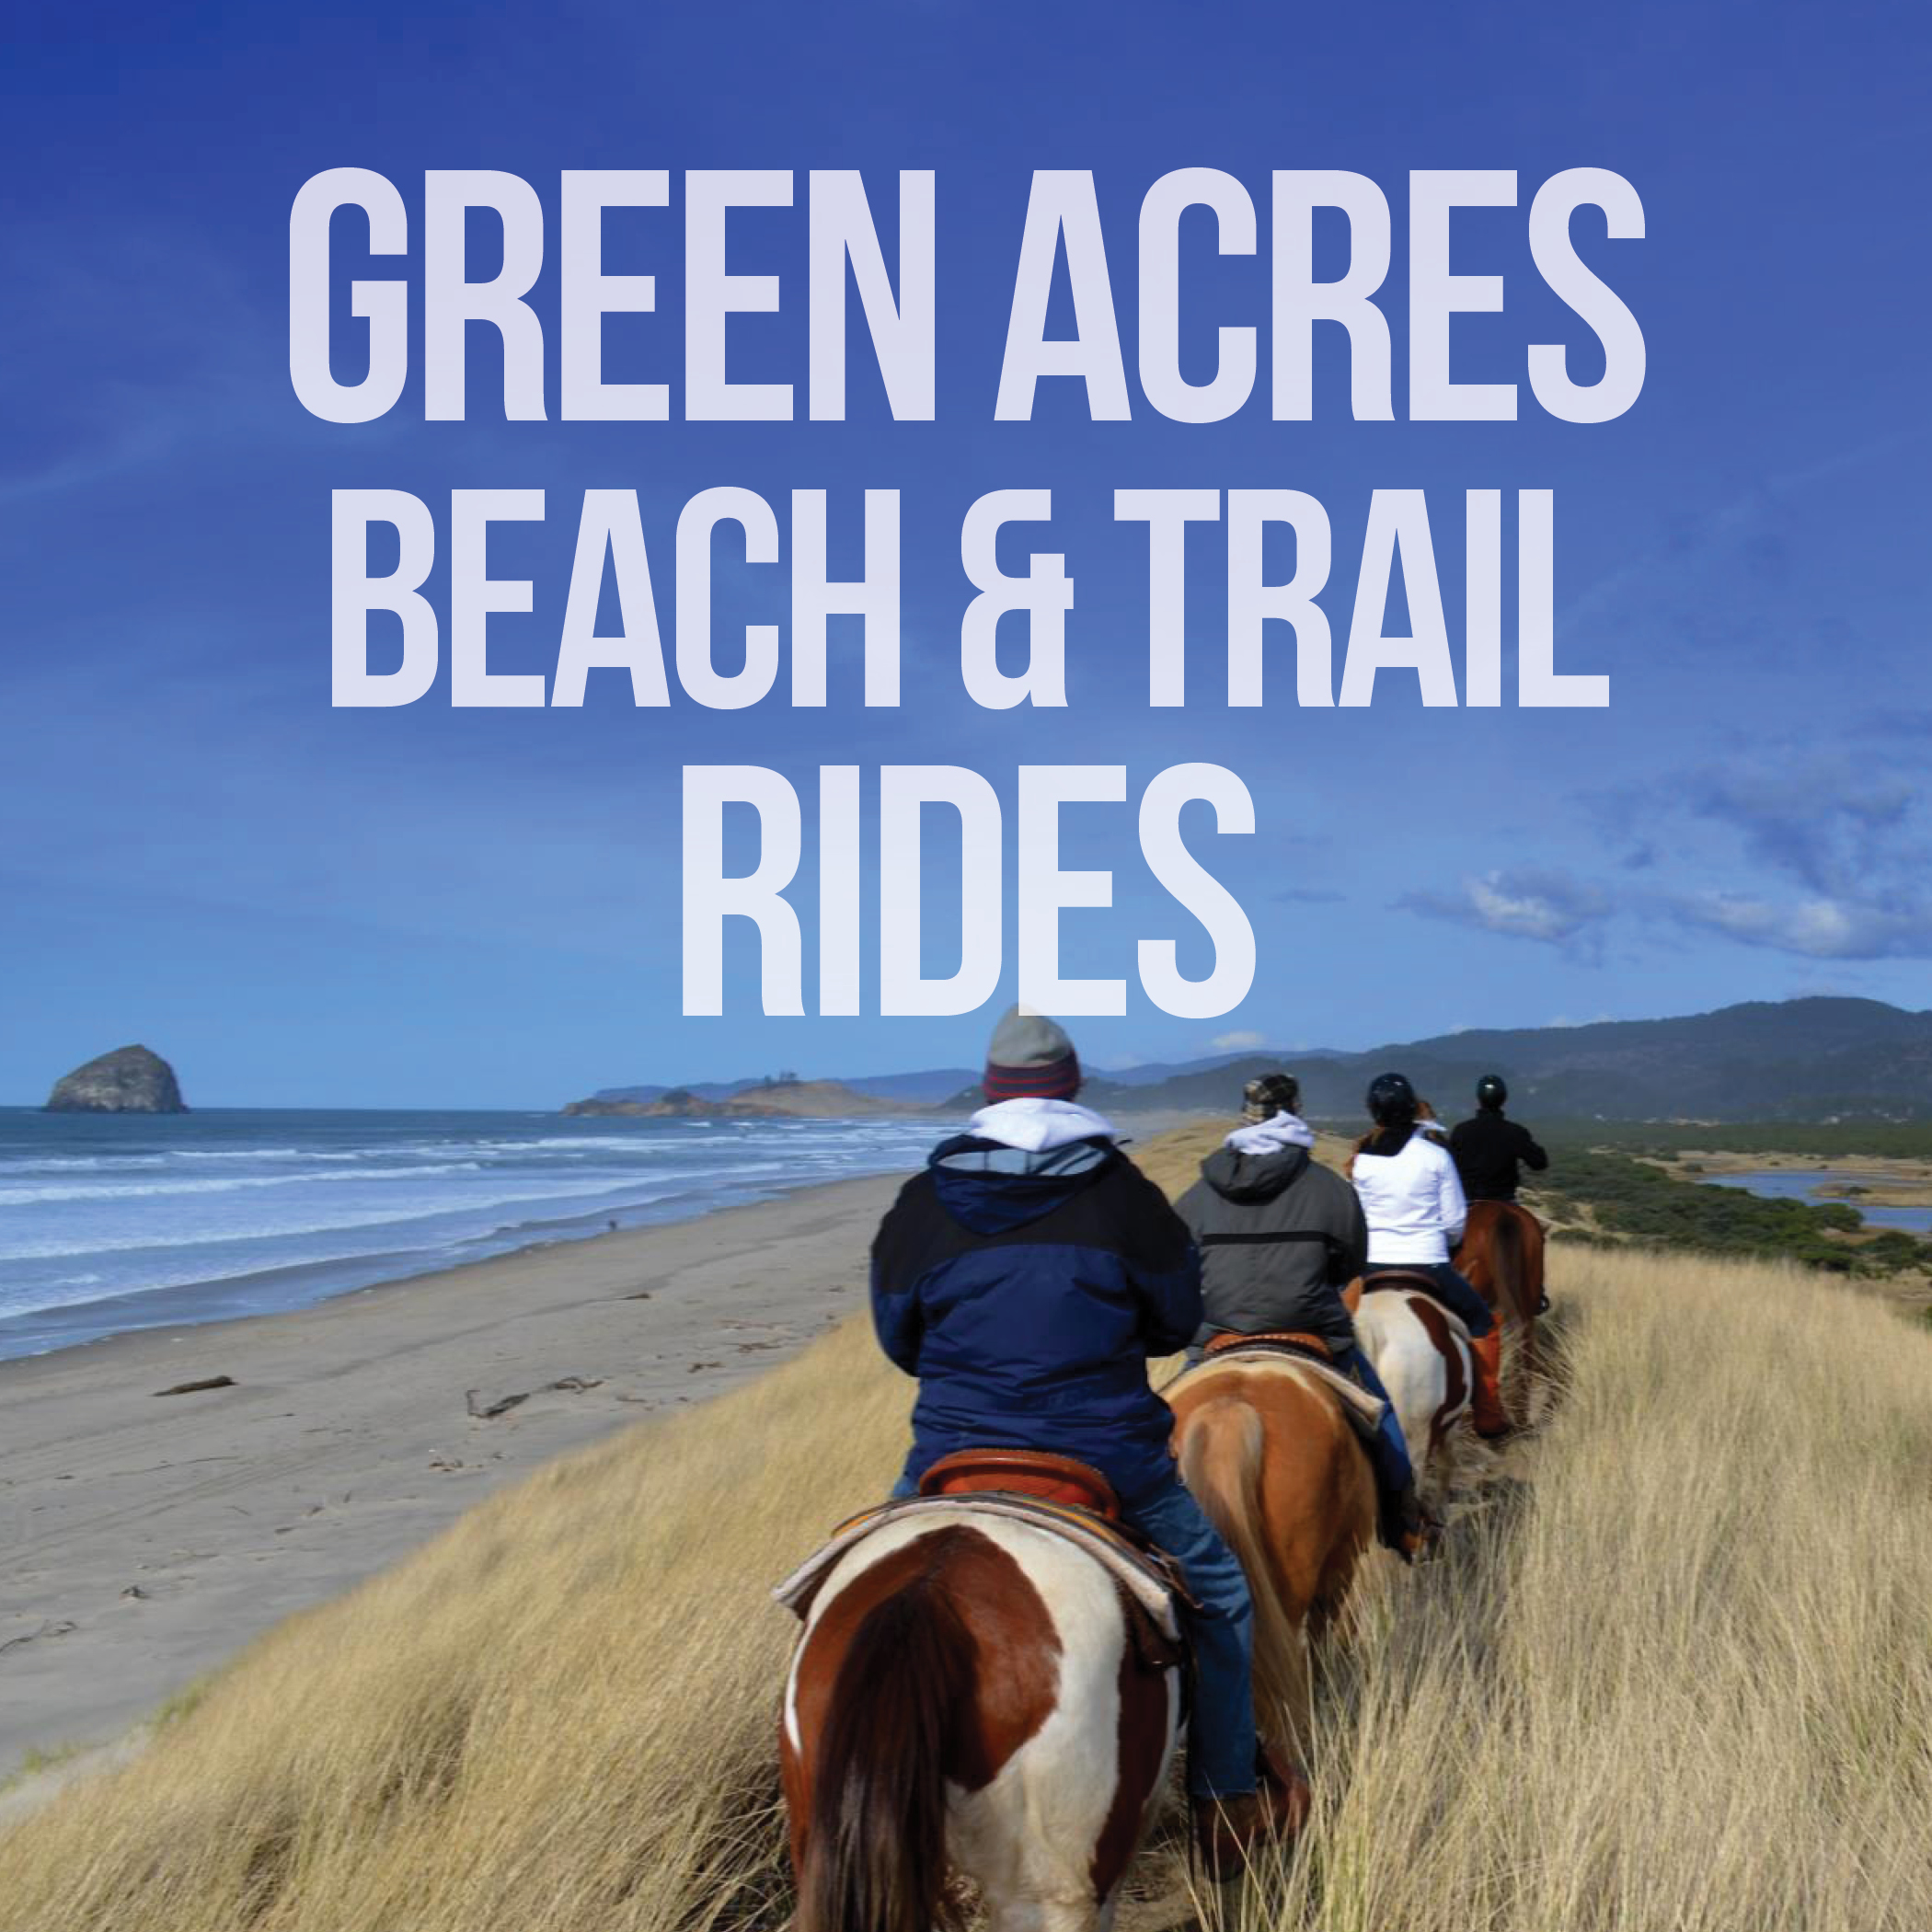 GREEN ACRES BEACH & TRAIL RIDES - LINCOLN CITY, OREGON    READ MORE